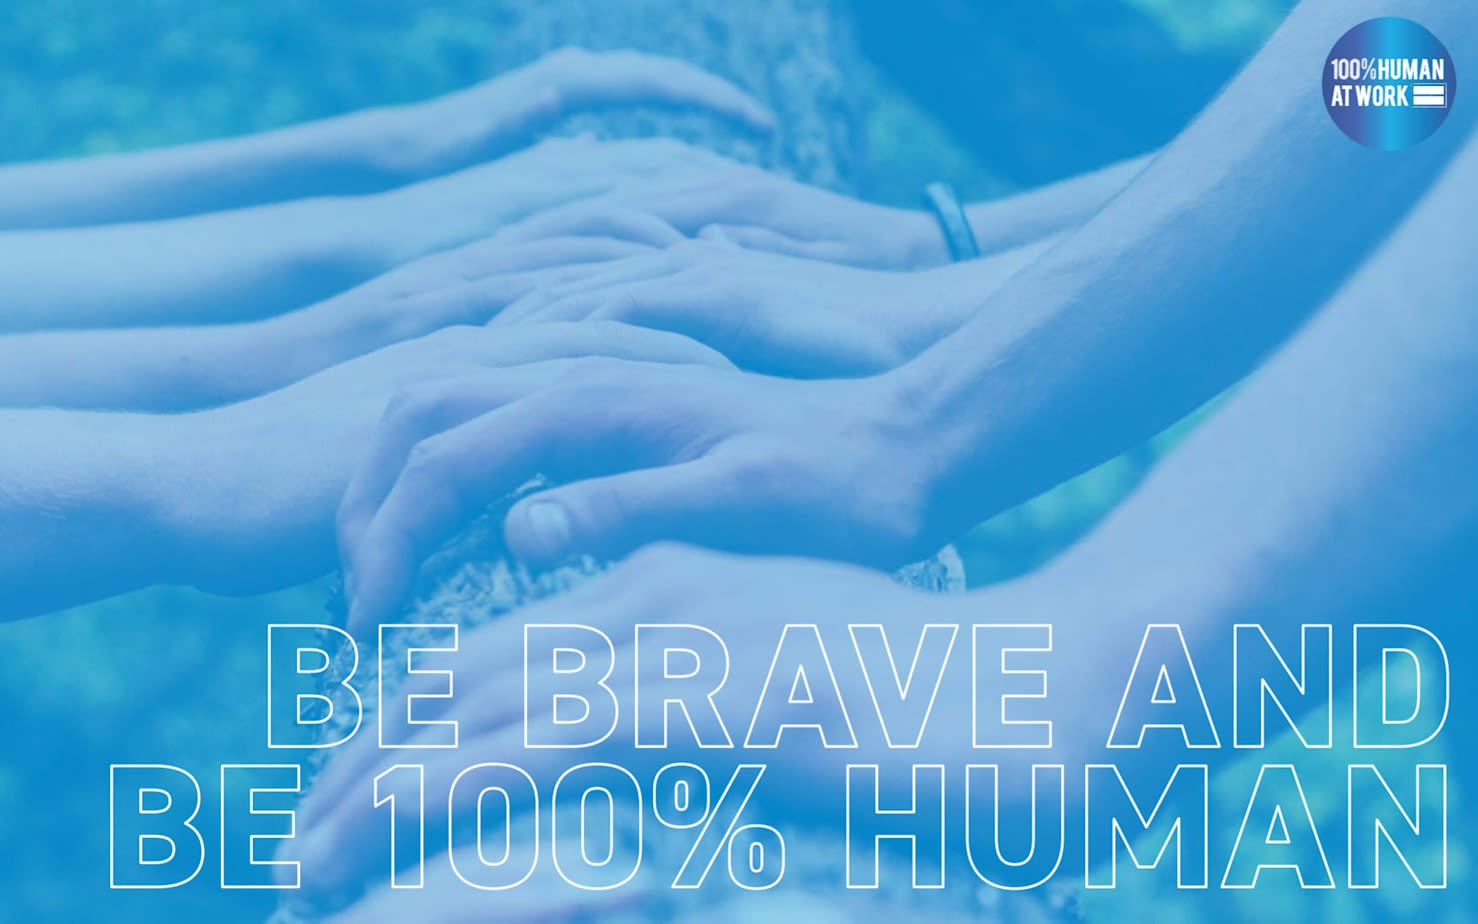 Be brave and be 100% human written on blue background showing a number of hands on a tree trunk